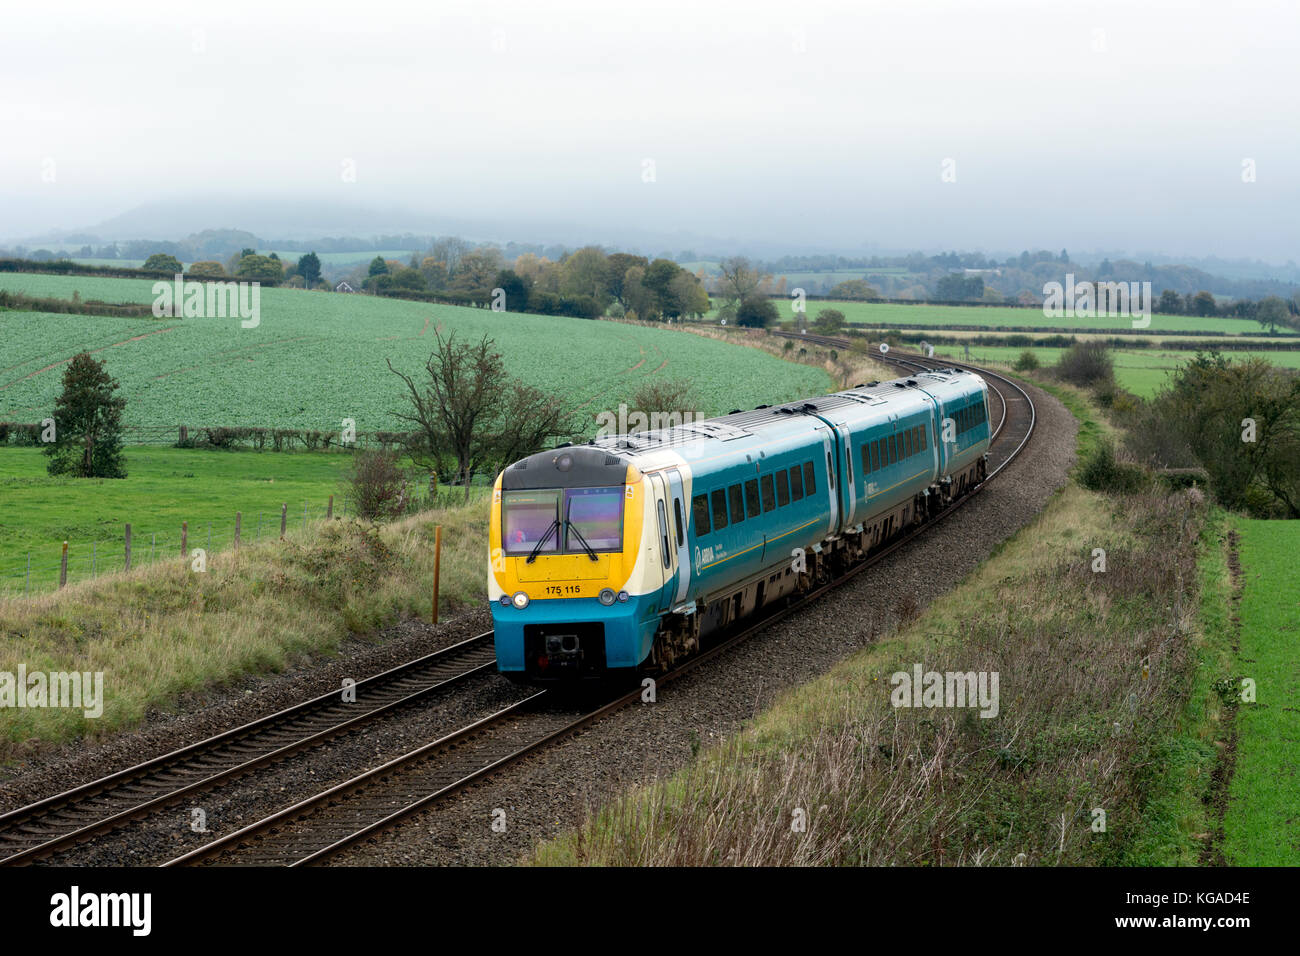 Arriva Trains Wales class 175 train on the Welsh Marches Line, Wistanstow, Shropshire, England, UK - Stock Image